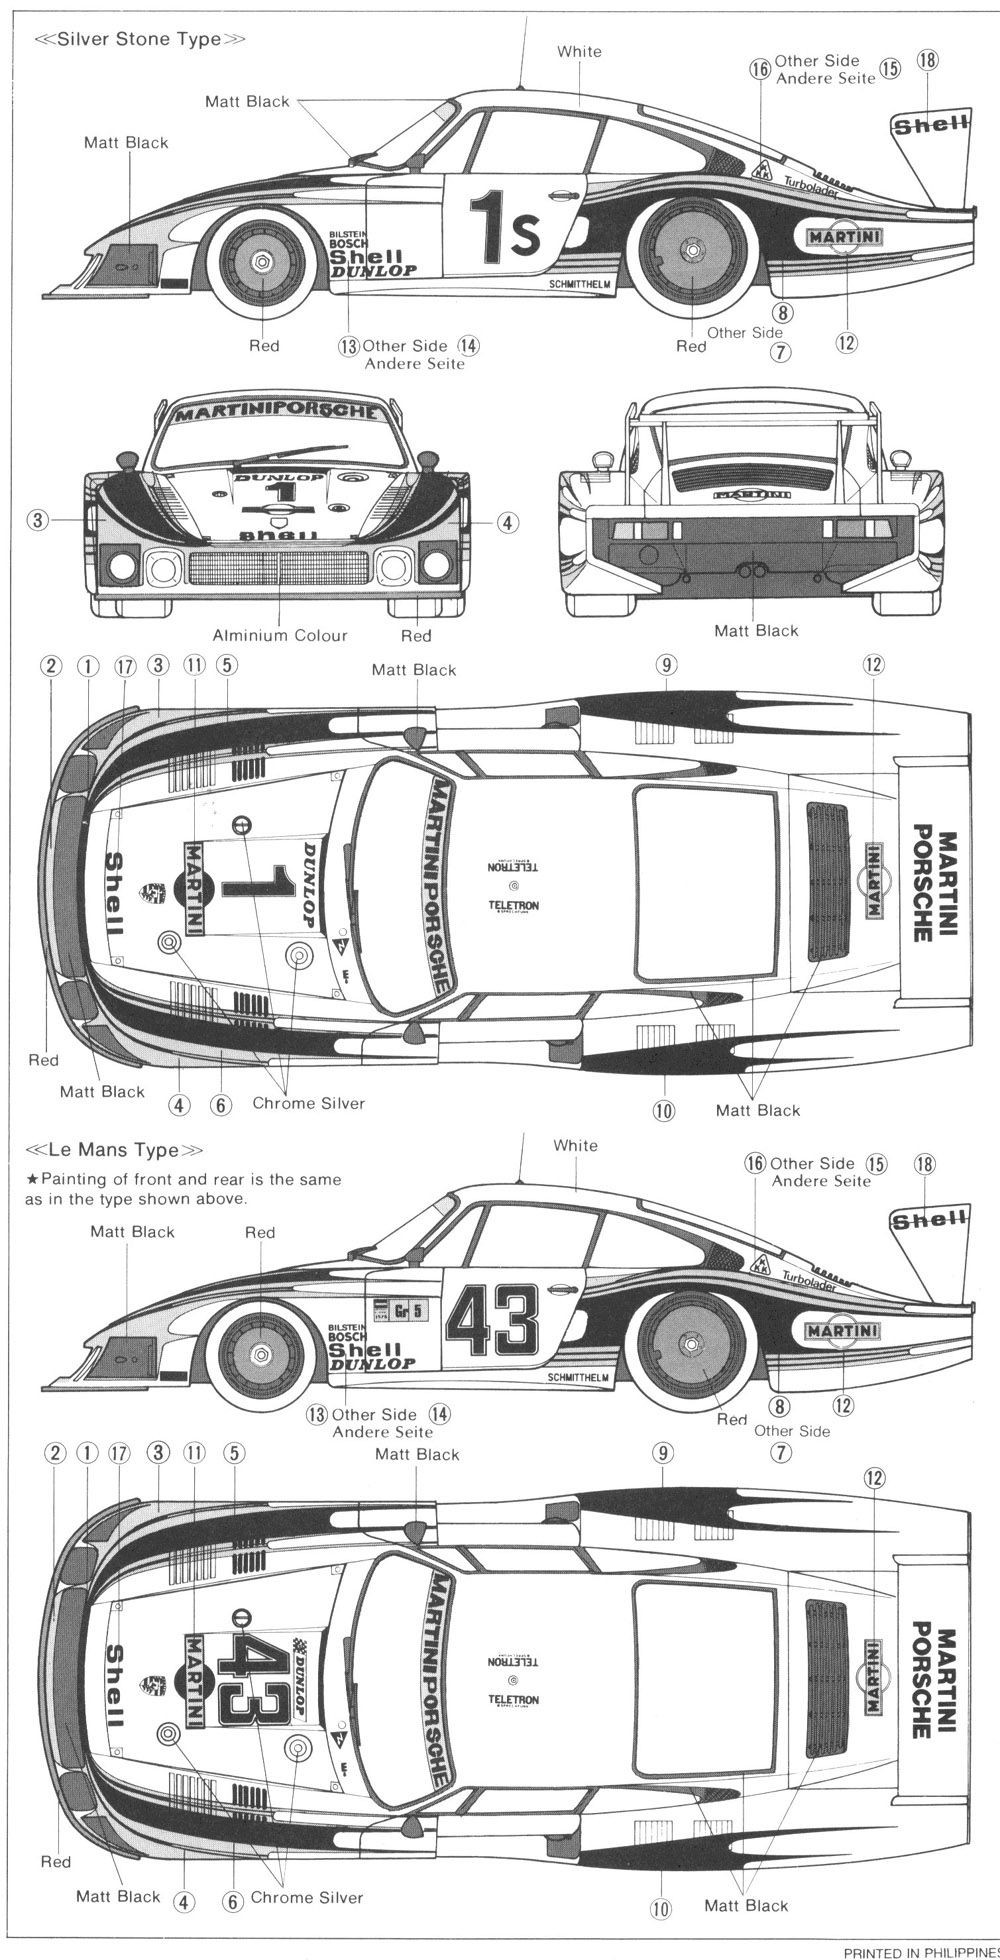 F1 Car Diagram Porsche 935 Illustrations Beautiful Porsche Cars Of F1 Car Diagram